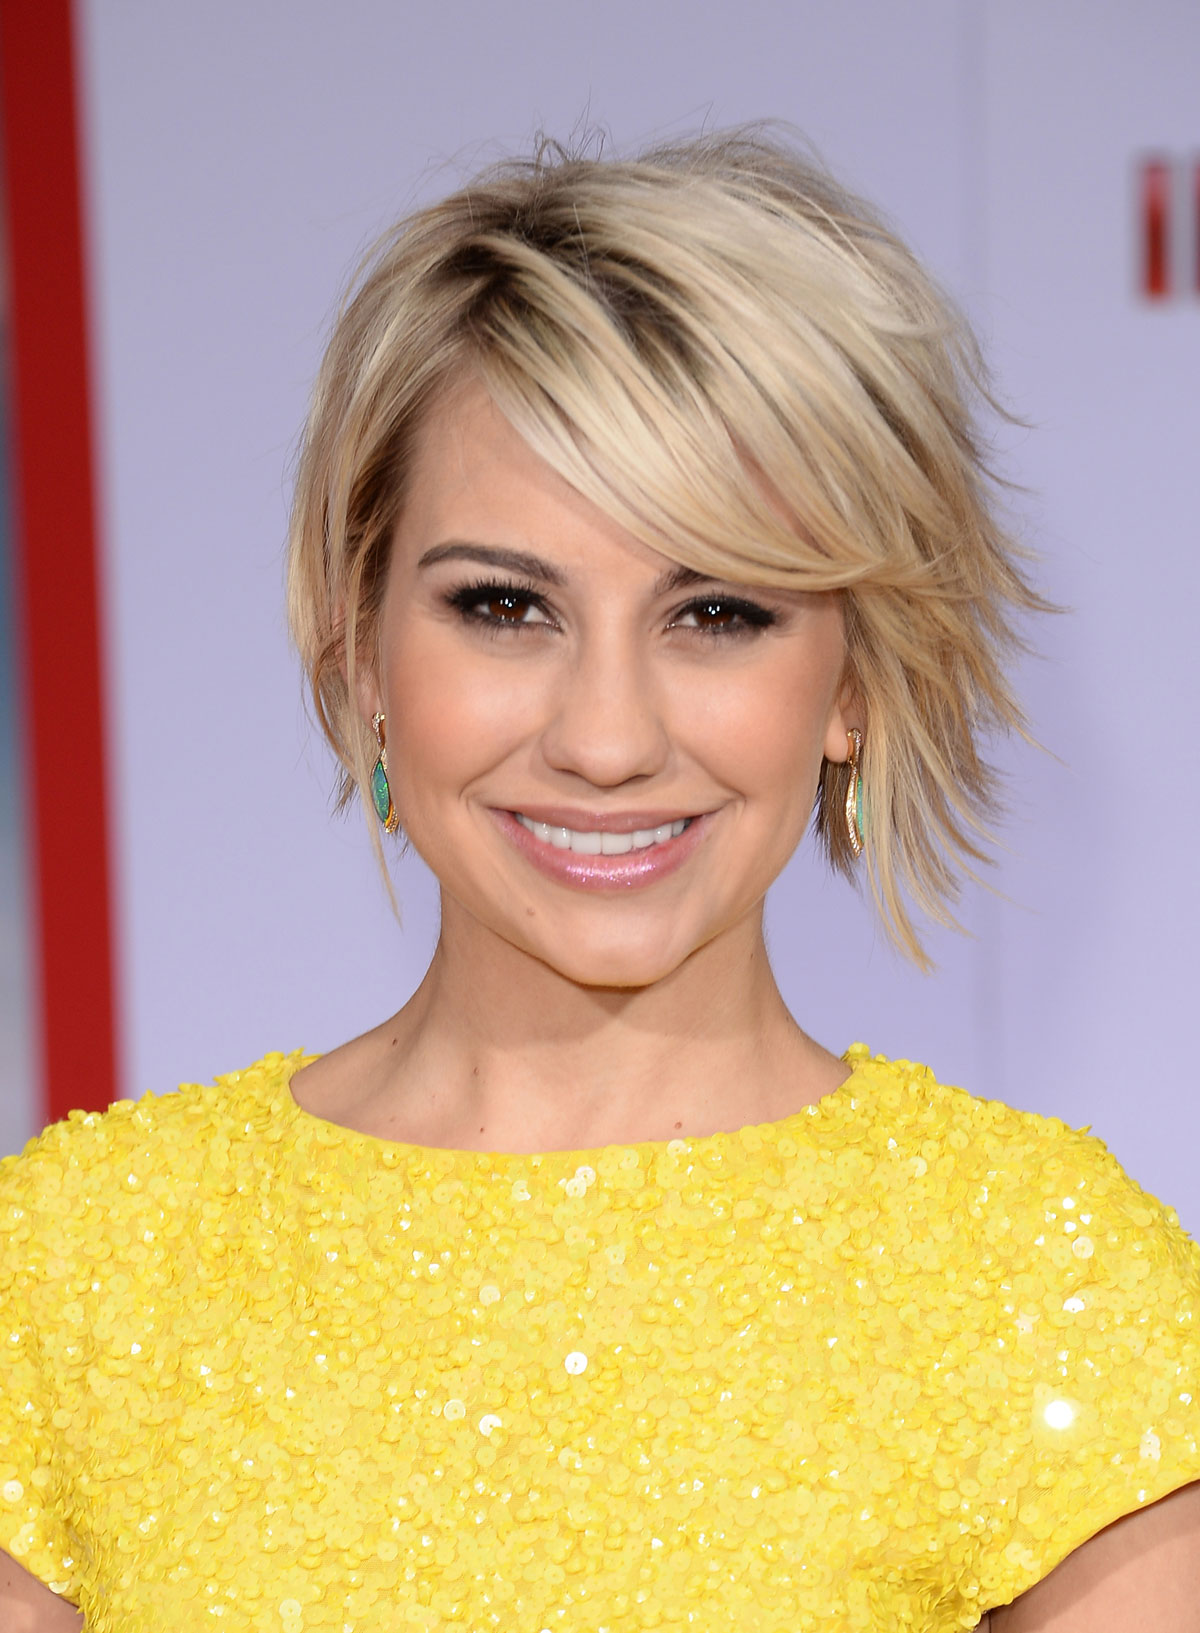 Chelsea kane haircut back view